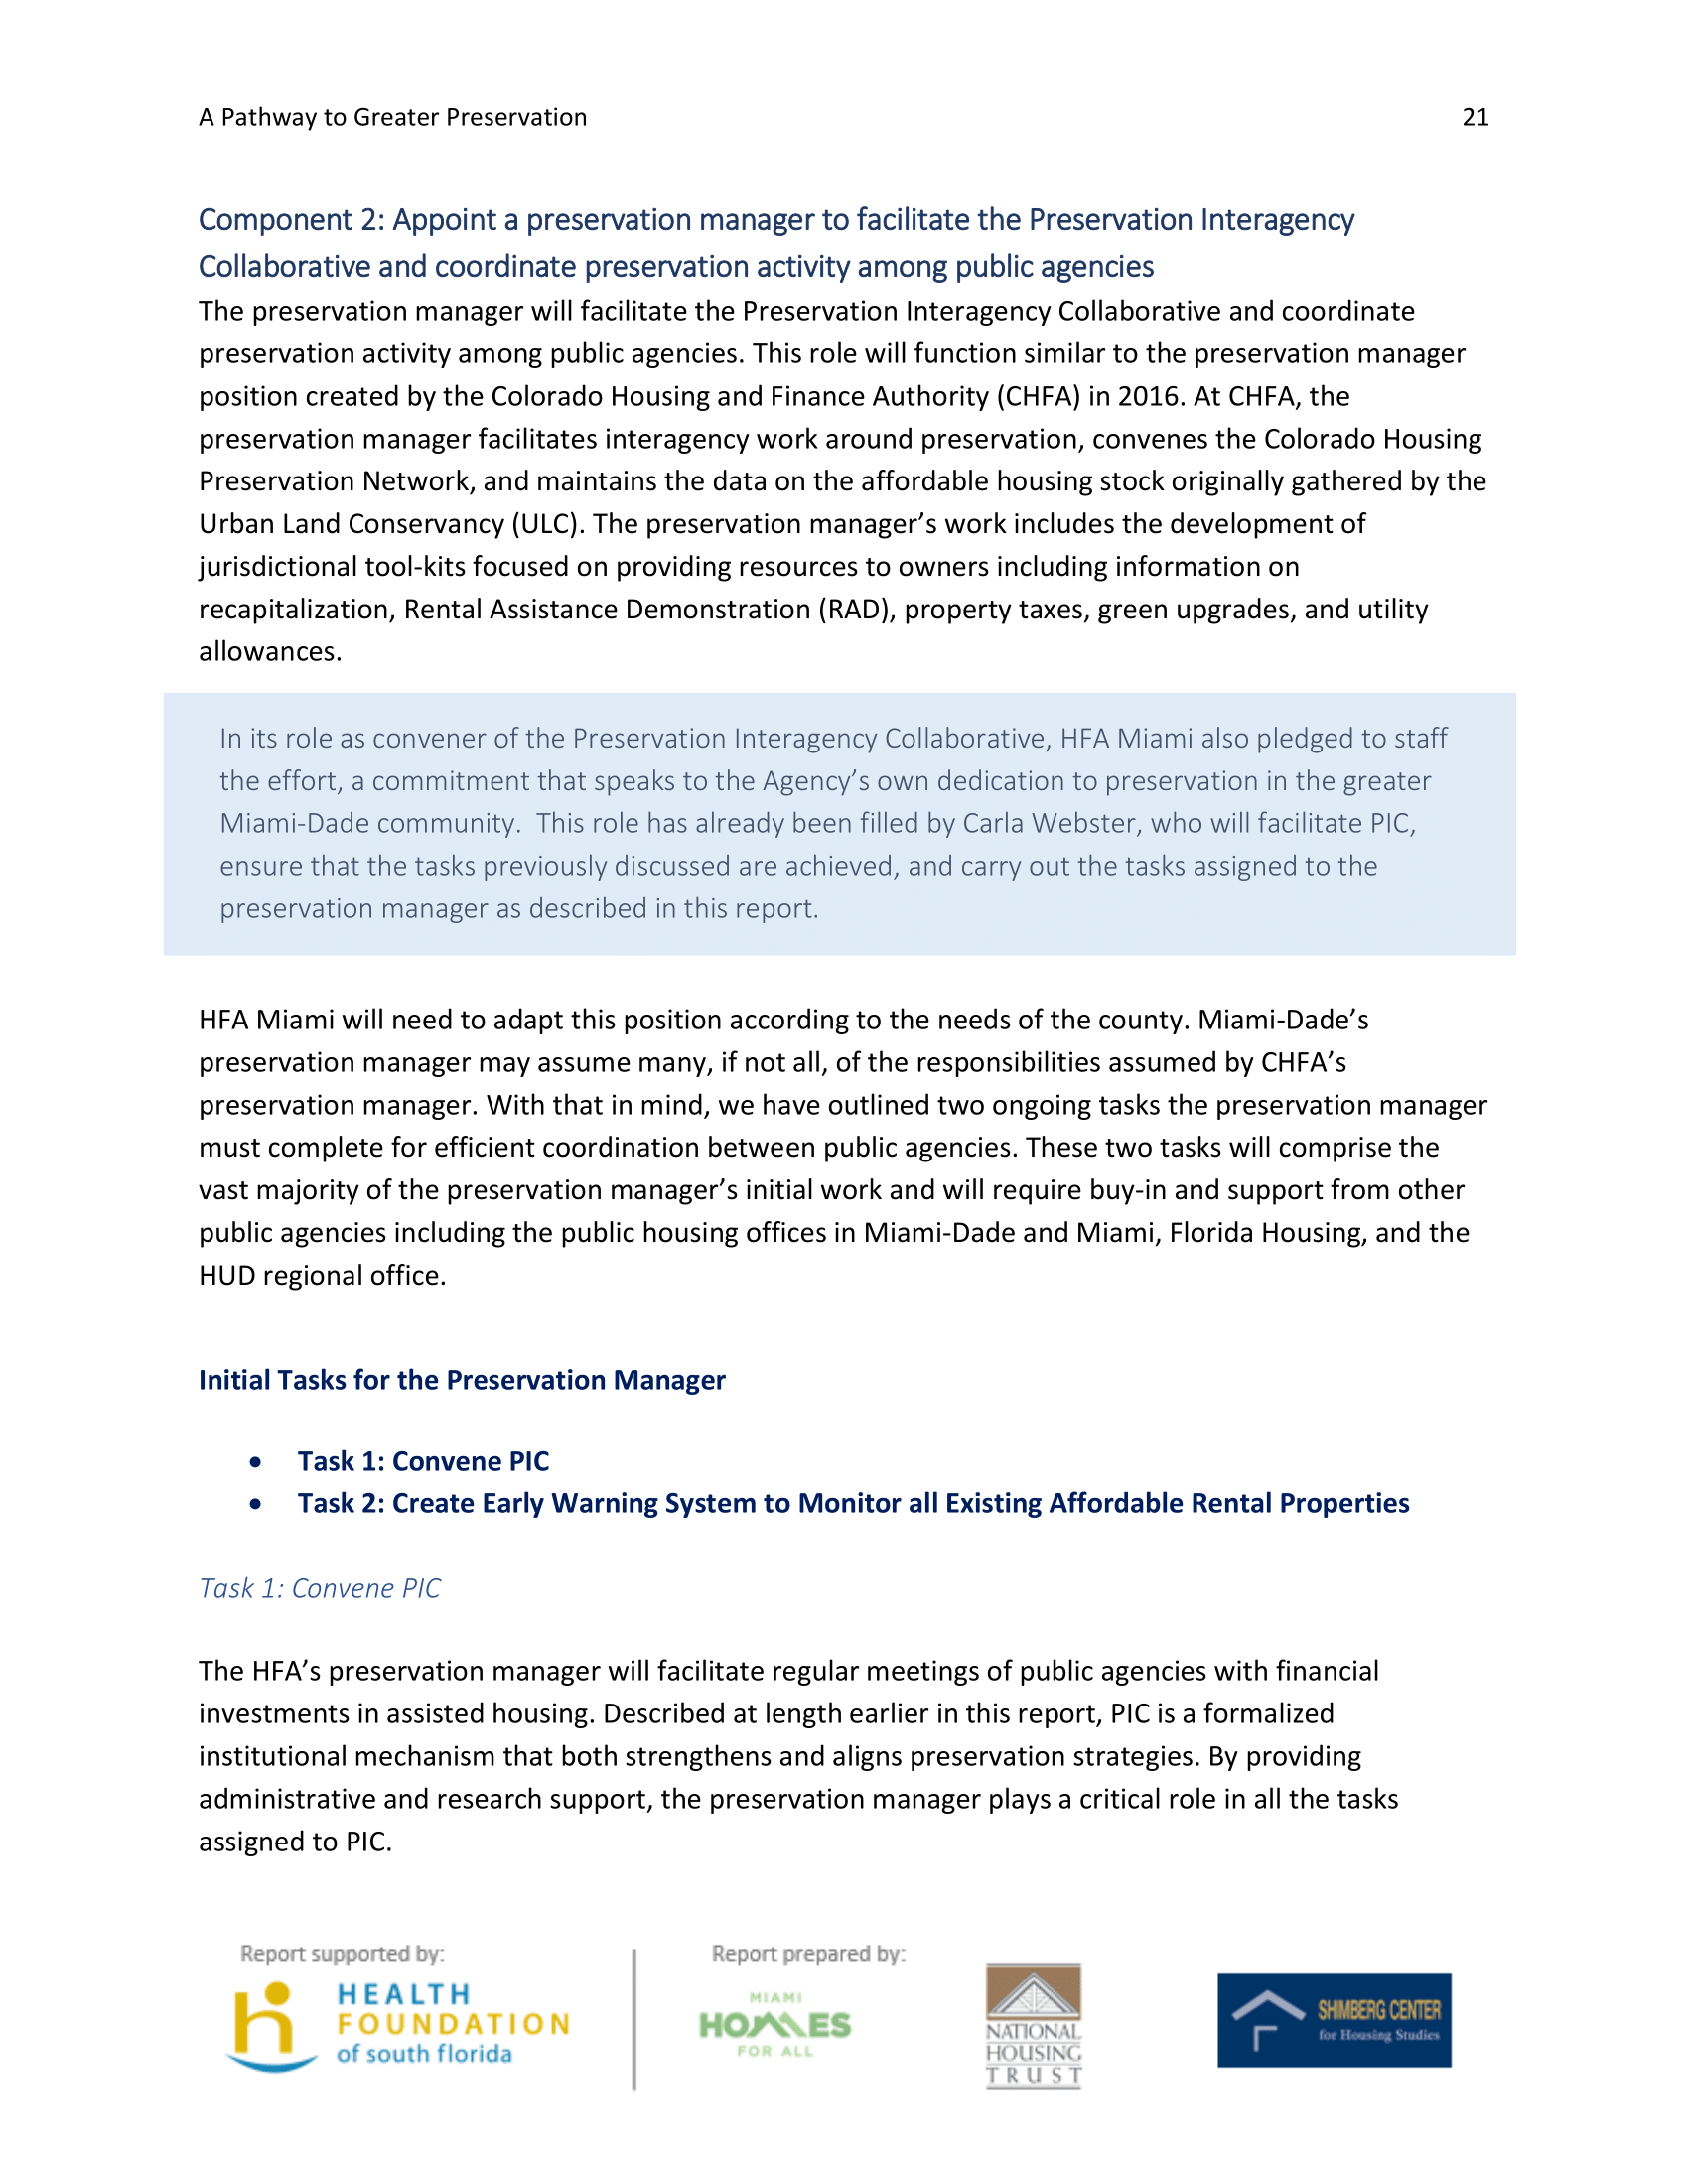 A Pathway to Greater Preservation - February 2018-29.png